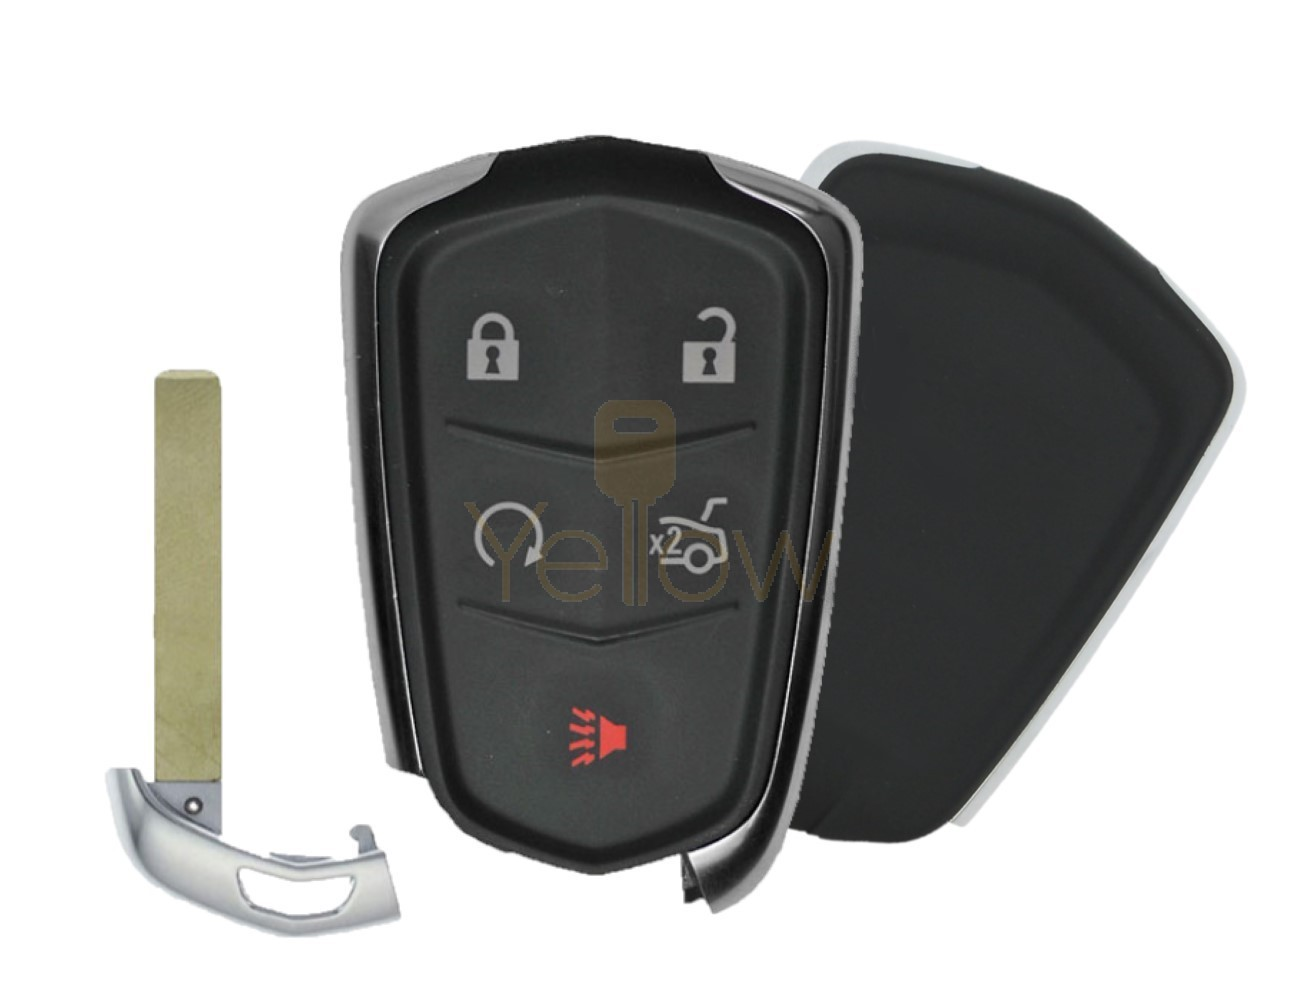 2014-2019 CADILLAC ATS CT6 CTS XTS SMART KEY 5B TRUNK / REMOTE START